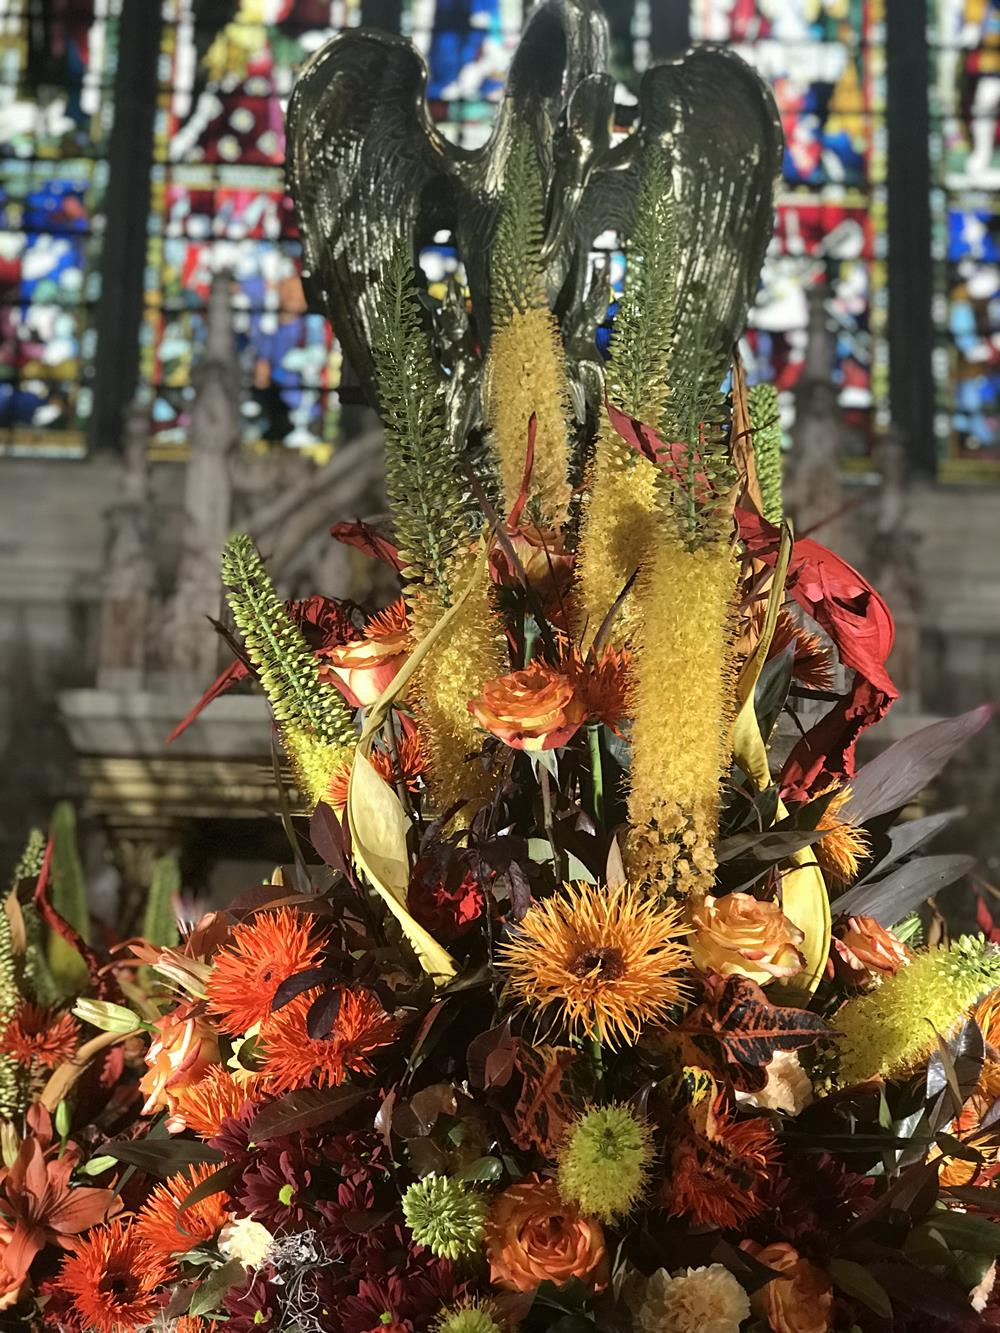 Floral display in front of stained glass window at Chichester cathedral